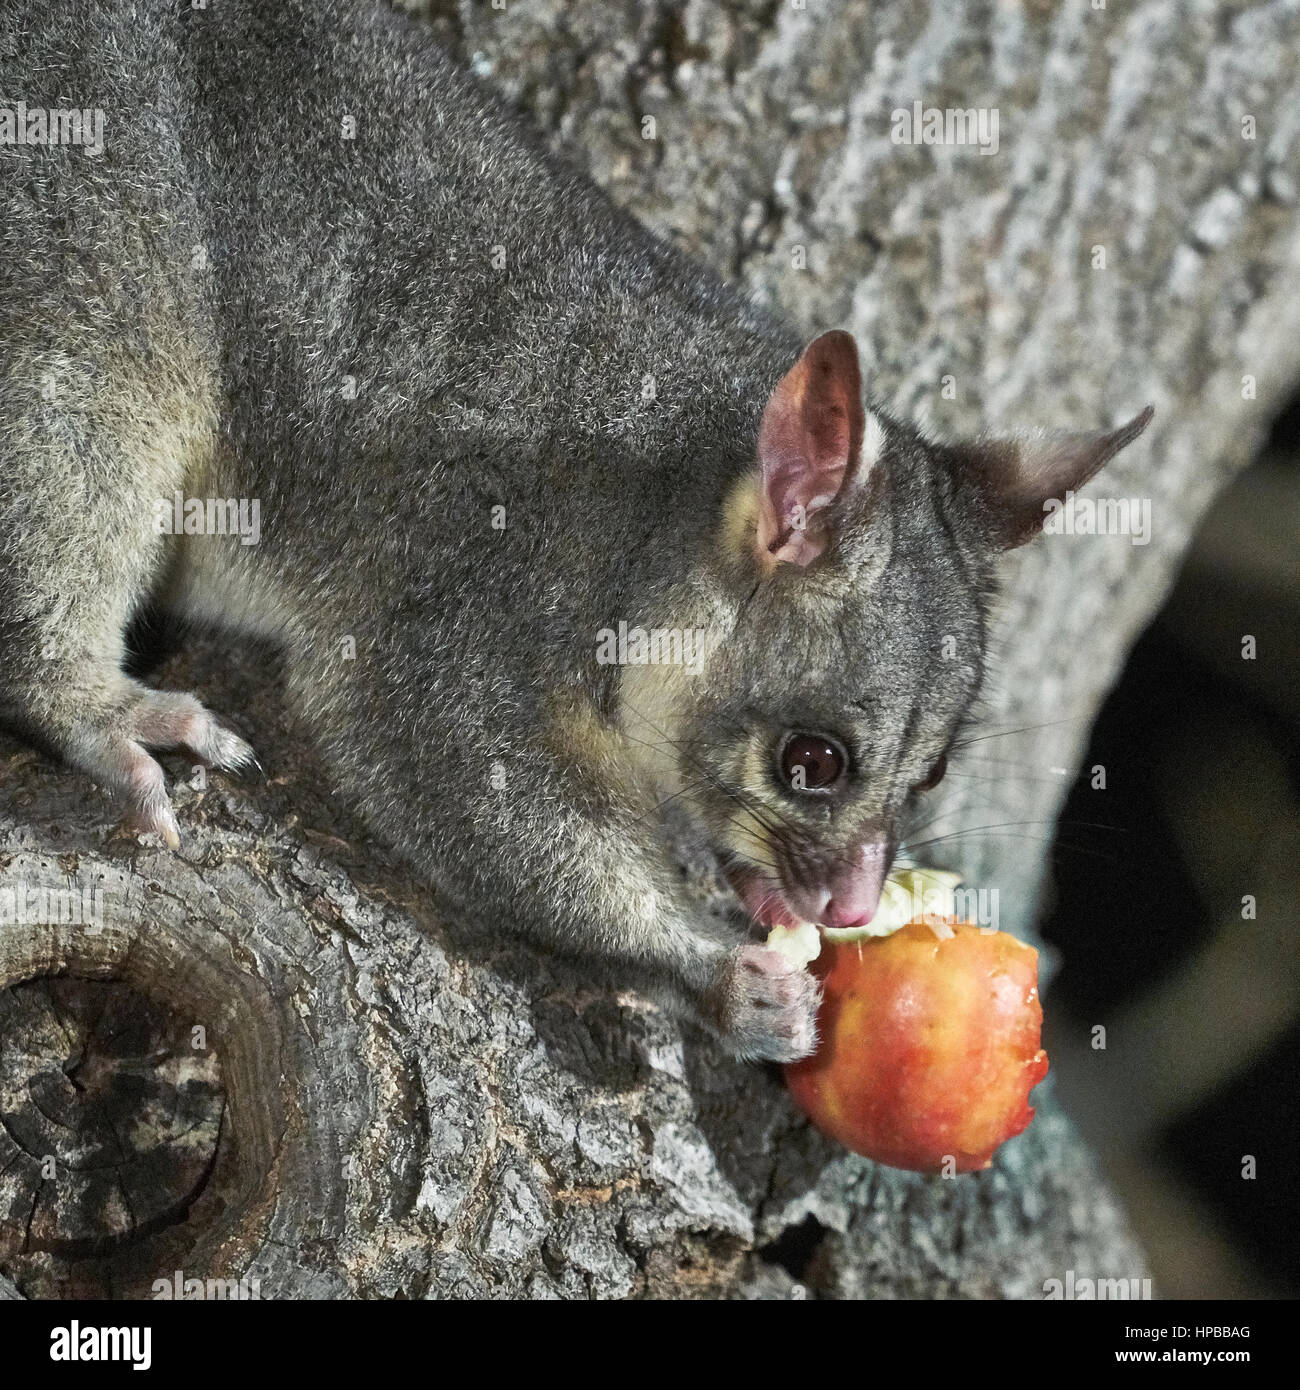 Young Australian Brushtail Possum in a tree, Adelaide, SA